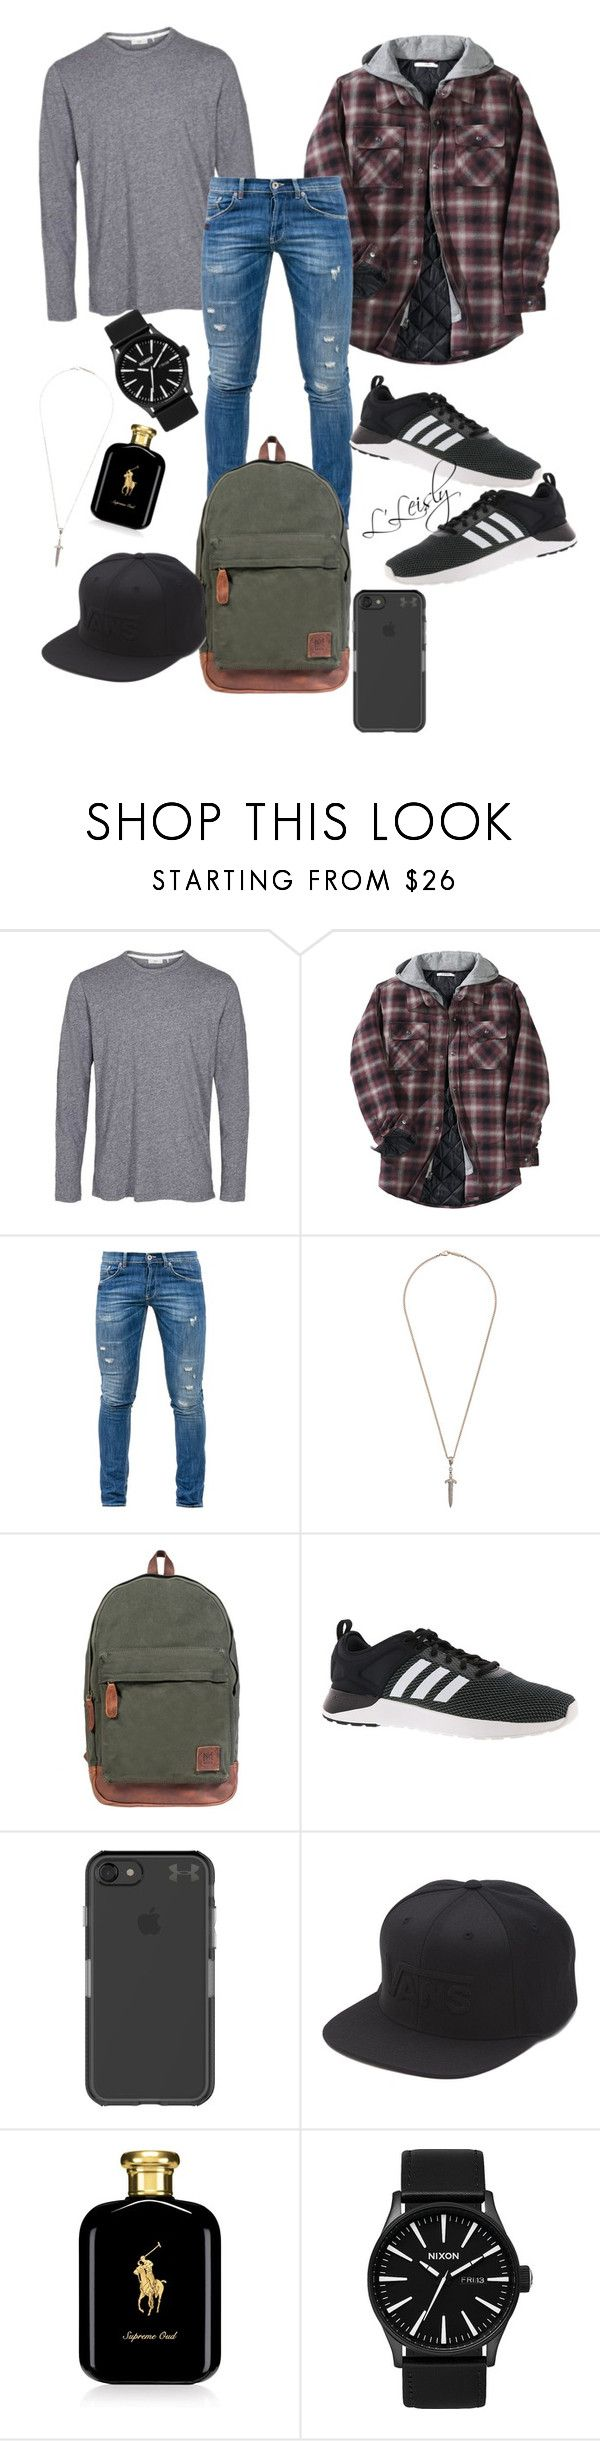 Hey Chico! by layaleisly on Polyvore featuring Dondup, Other, adidas, Nixon, Mahi, Vans, Under Armour, Roman Paul, Ralph Lauren and men's fashion